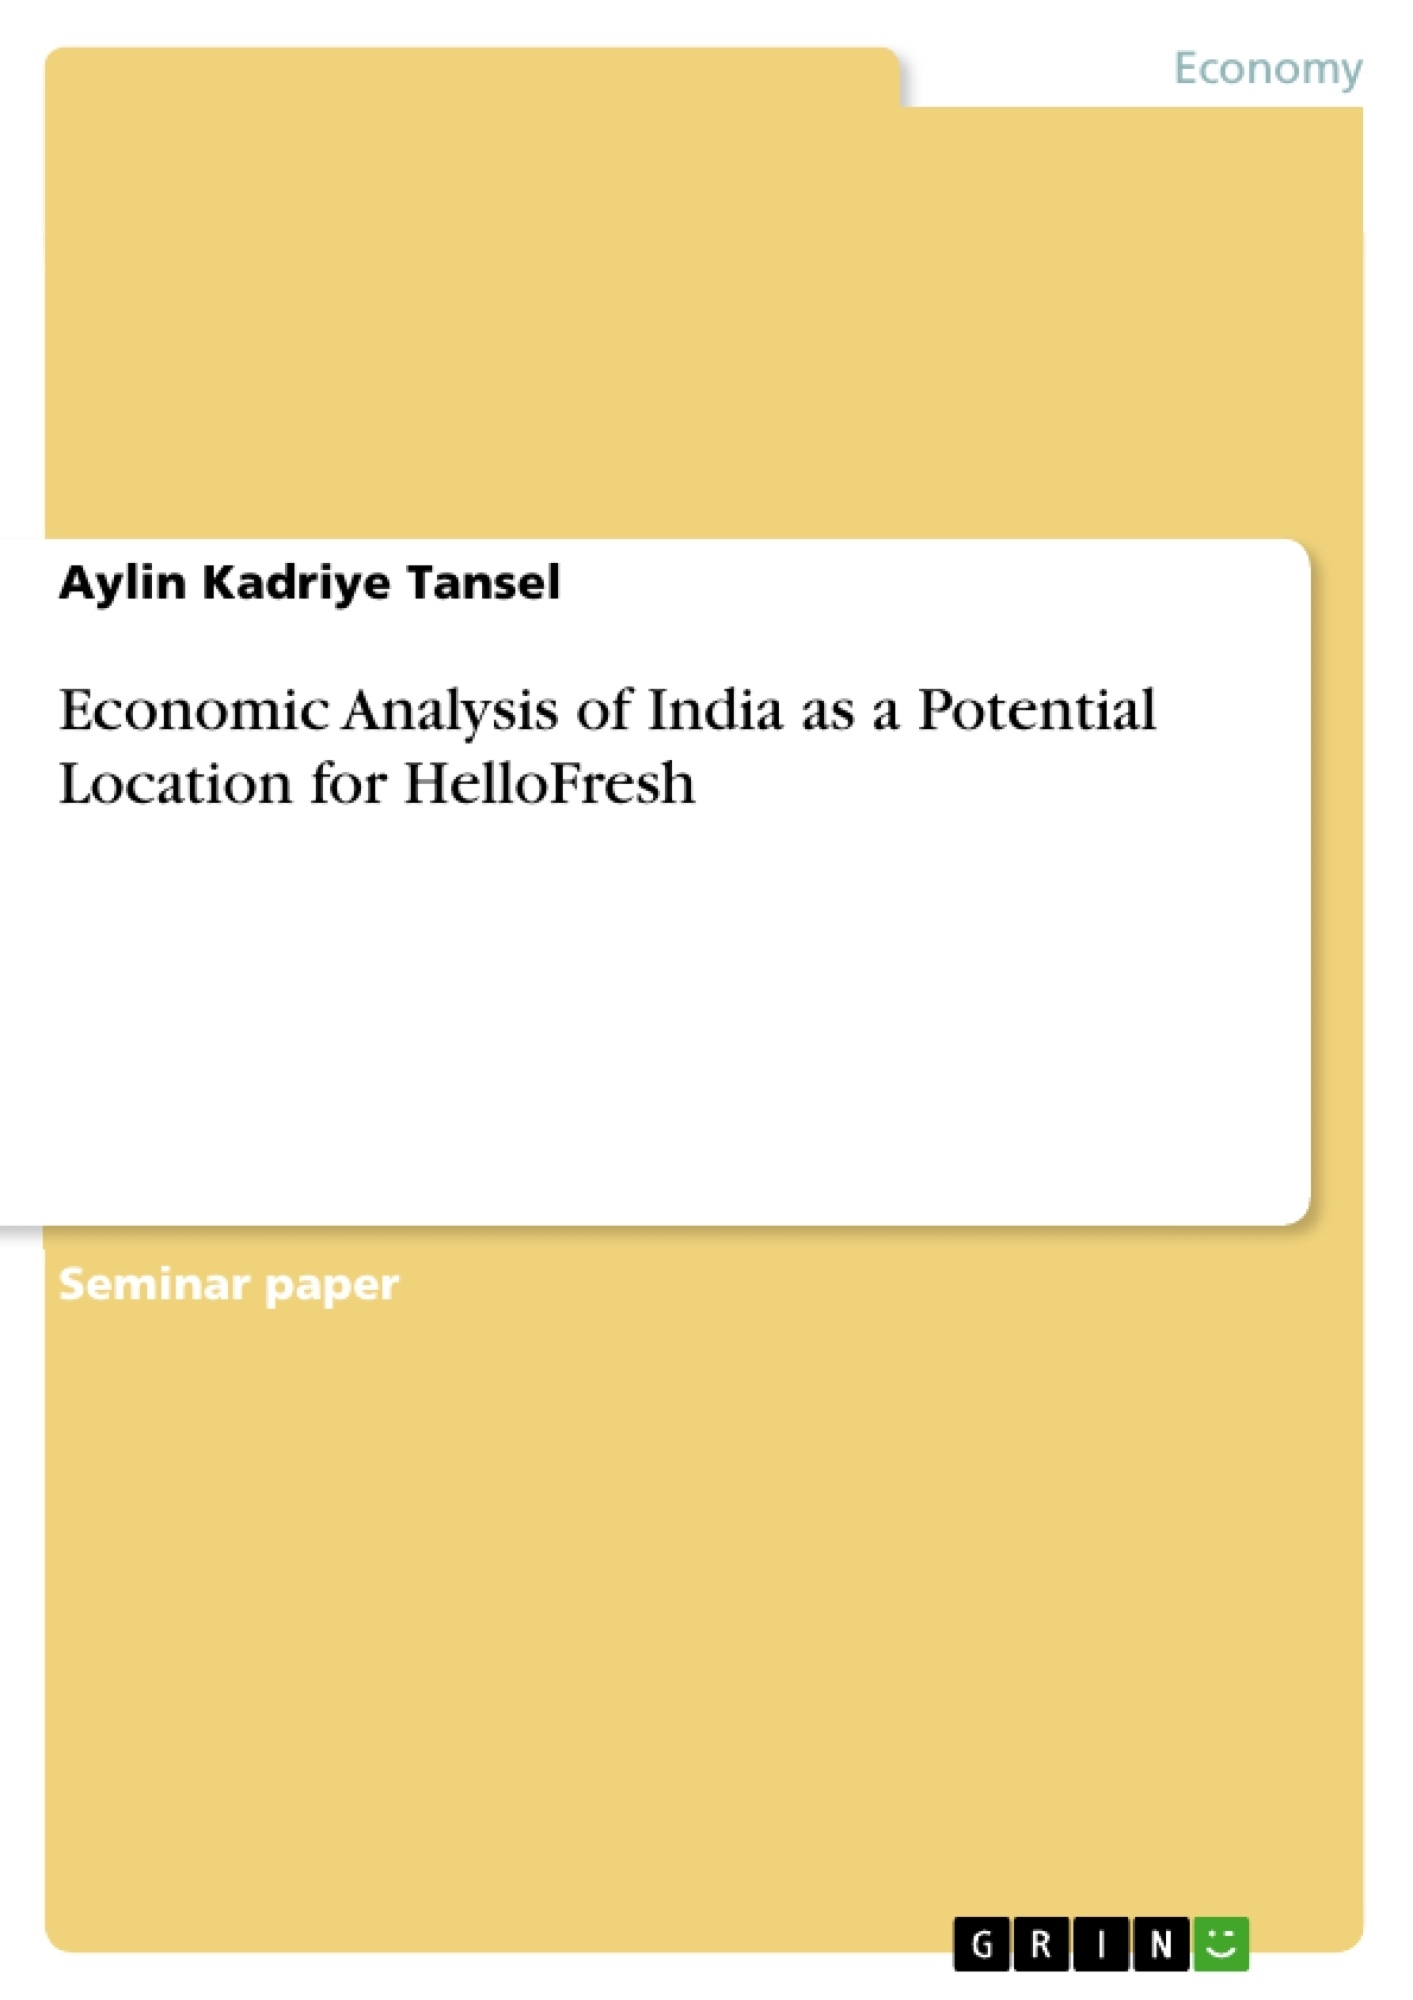 Title: Economic Analysis of India as a Potential Location for HelloFresh